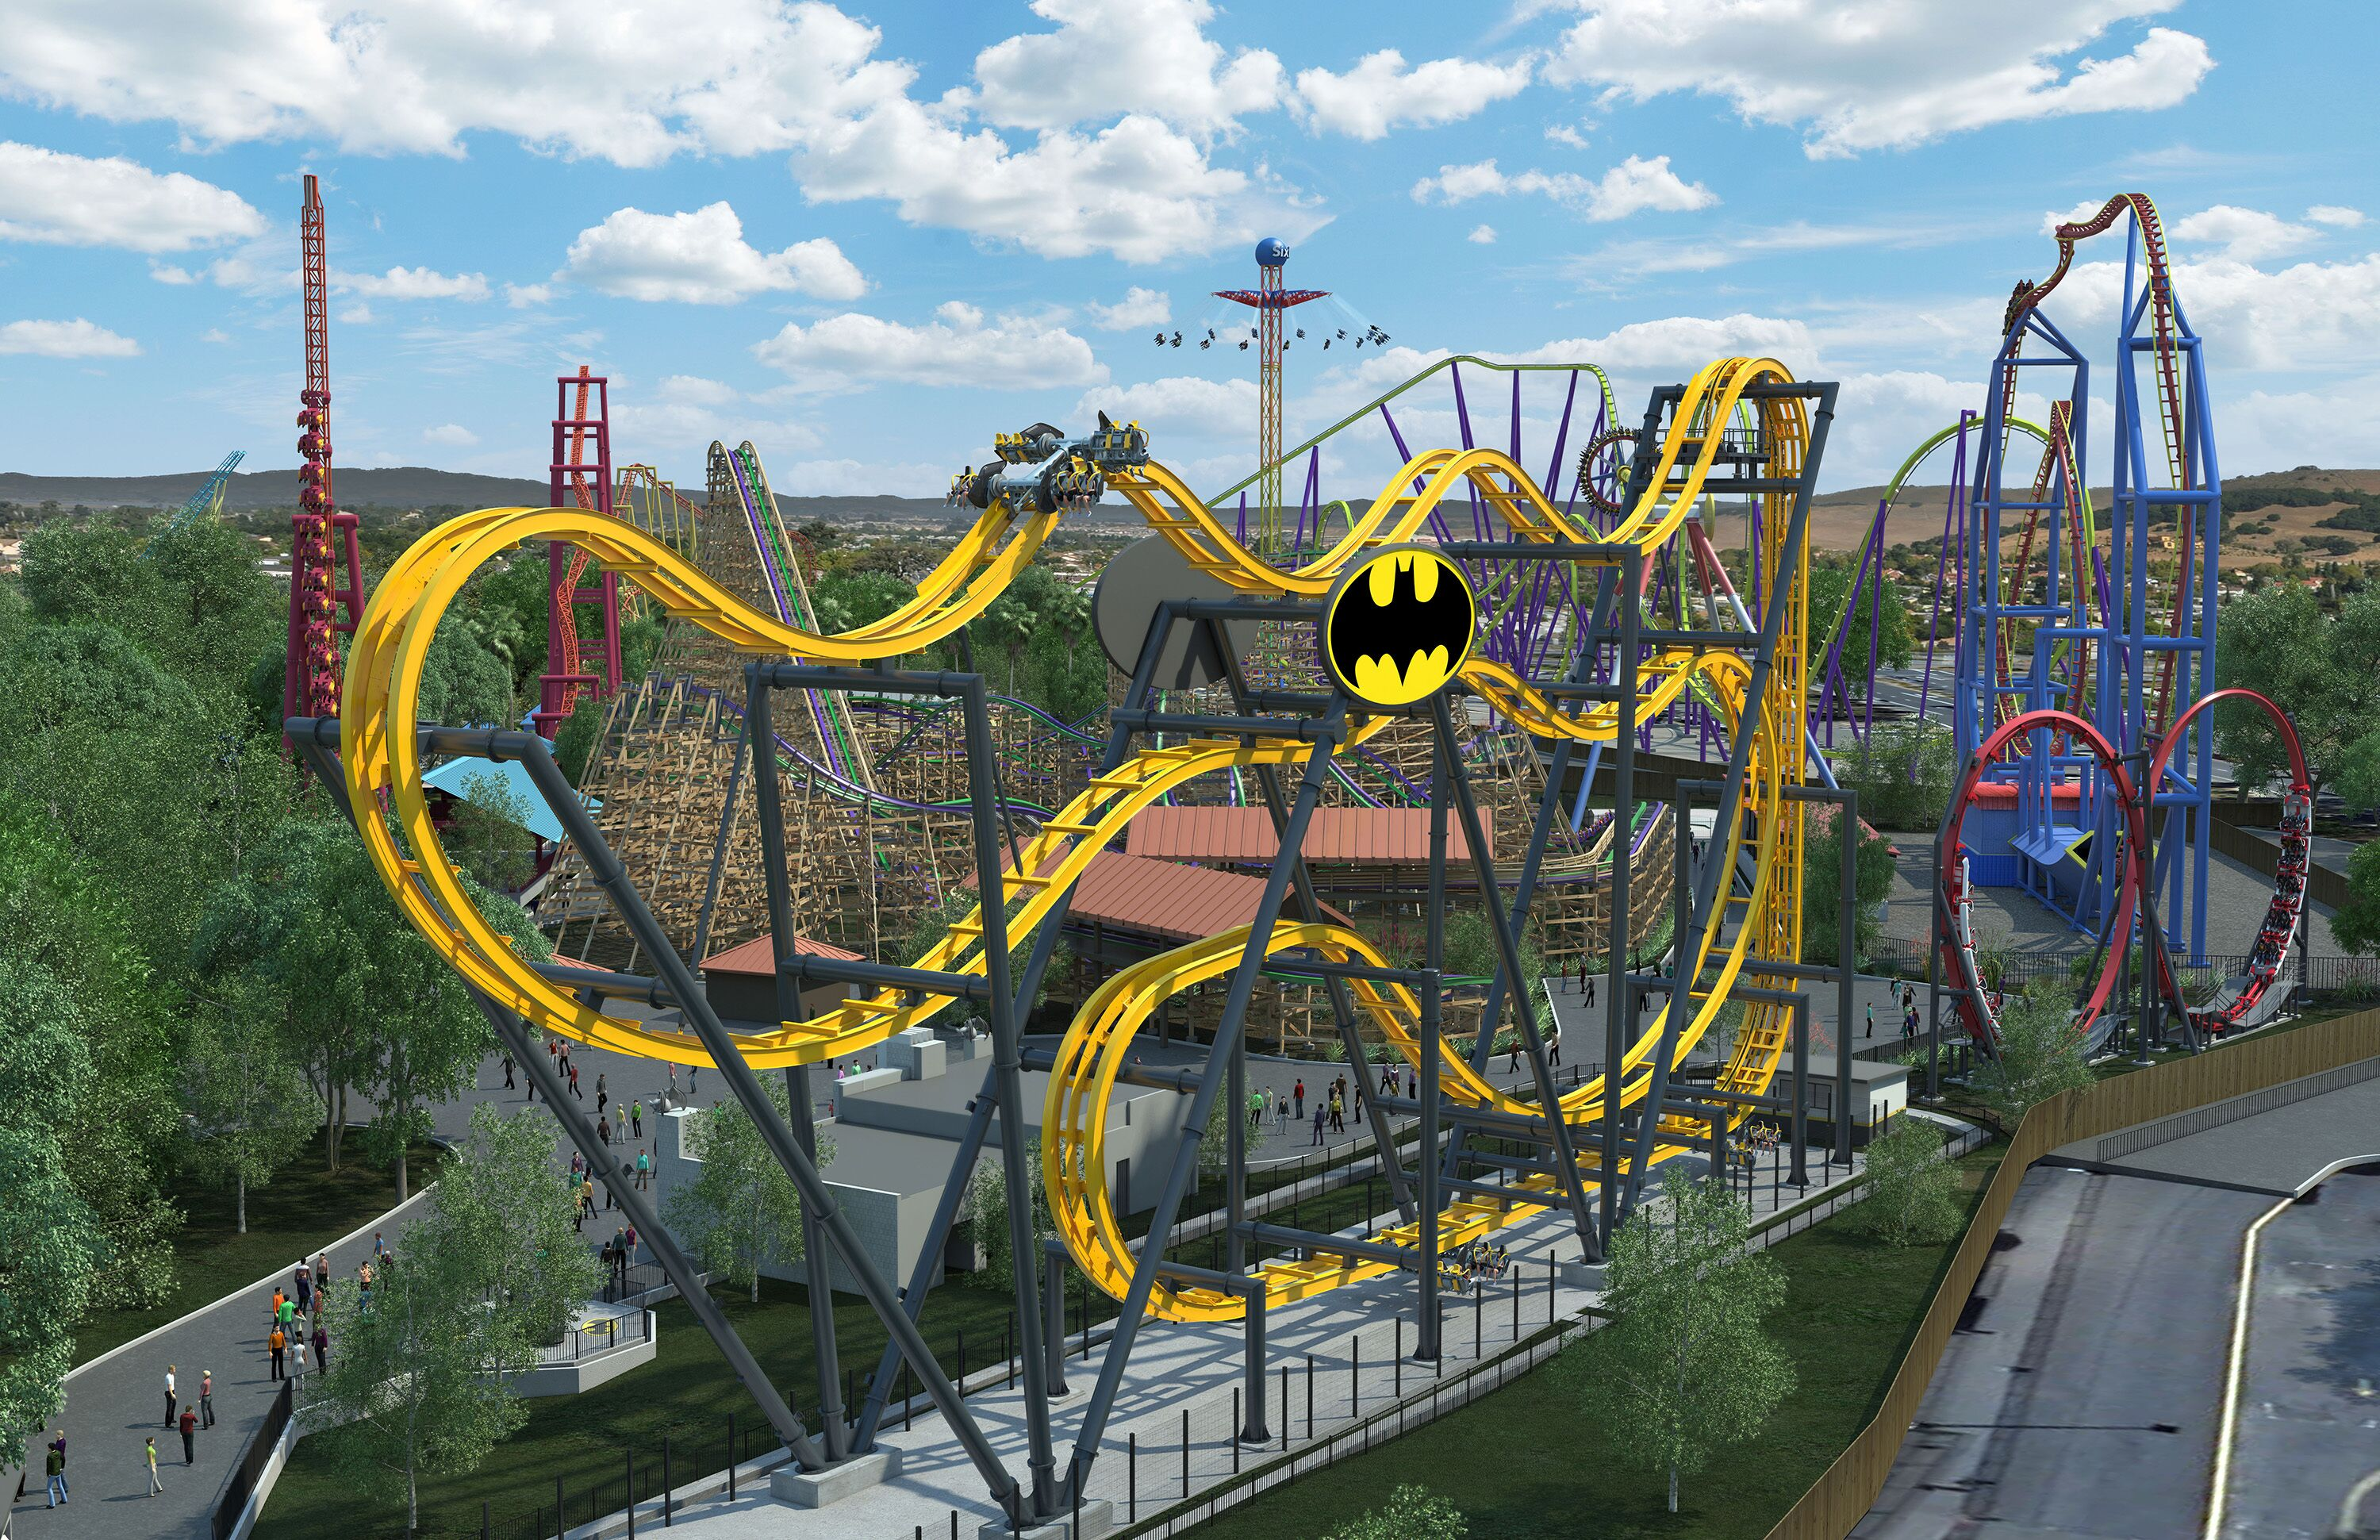 9 theme park rides that will have your adrenaline pumping next year